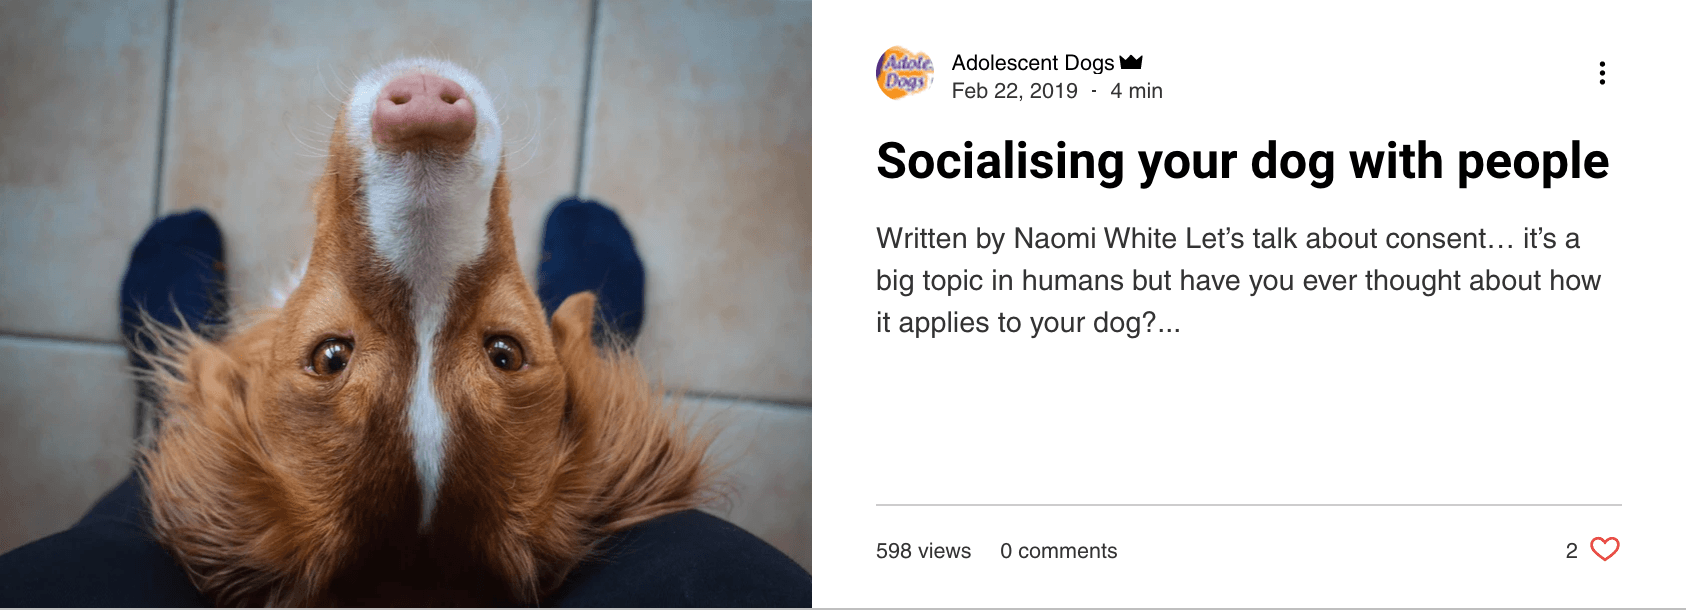 Socialising Your Dog with People - - blog post by Adolescent Dogs Online Training Academy